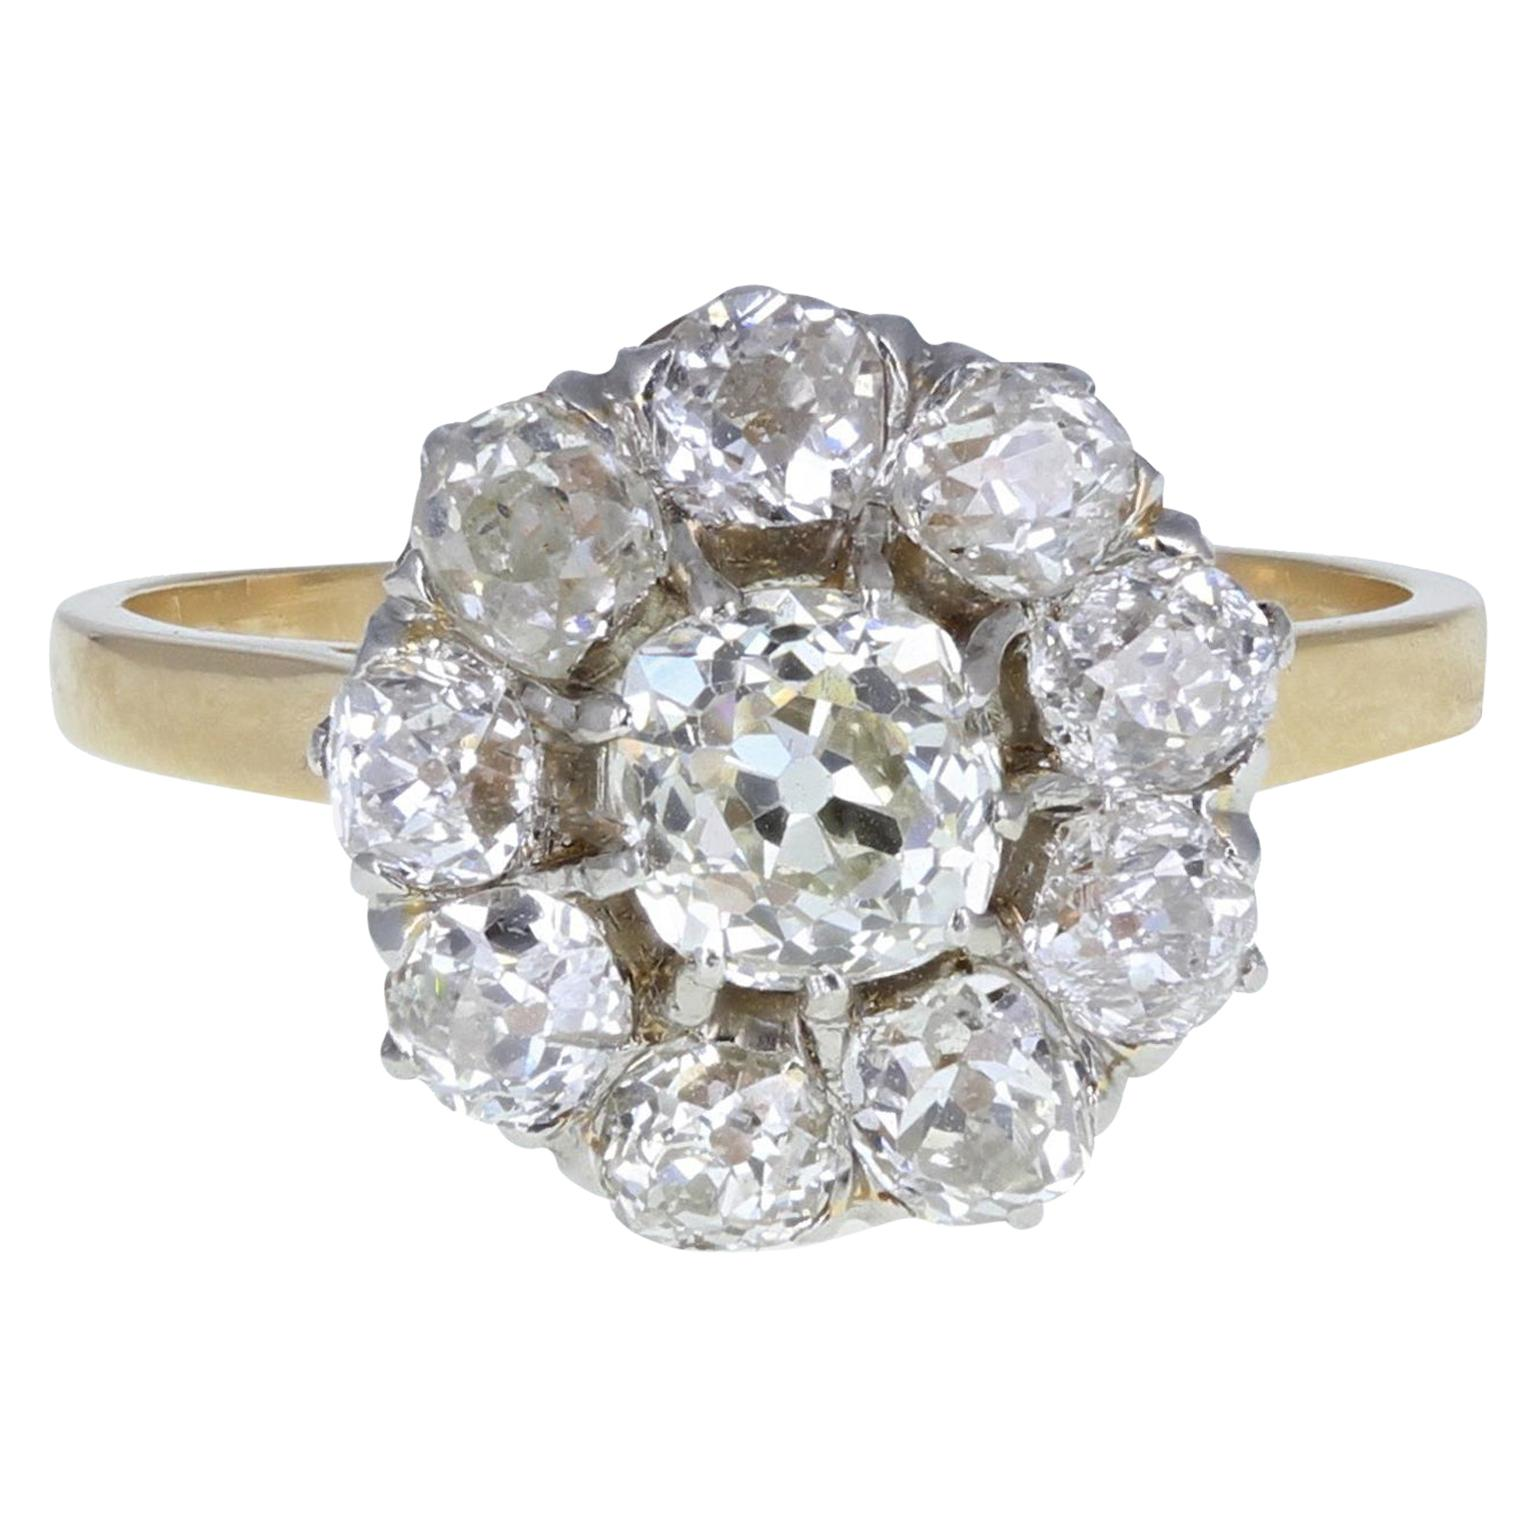 Antique Victorian 18 Carat Gold Old Cut Diamond Daisy Cluster Ring